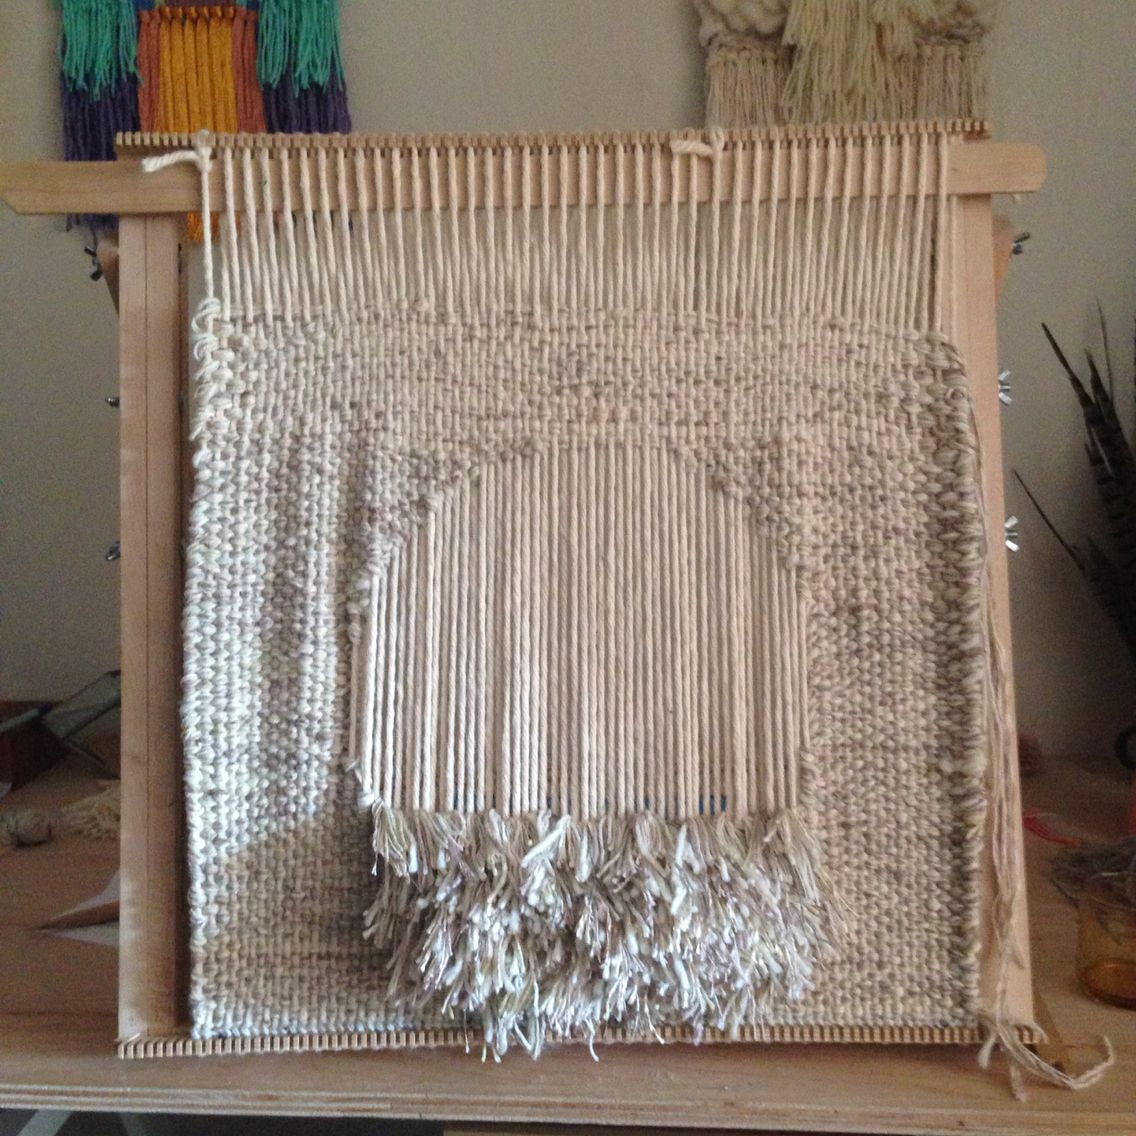 Woven Wall Hanging Weaving Tapestry By Maryanne Moodie